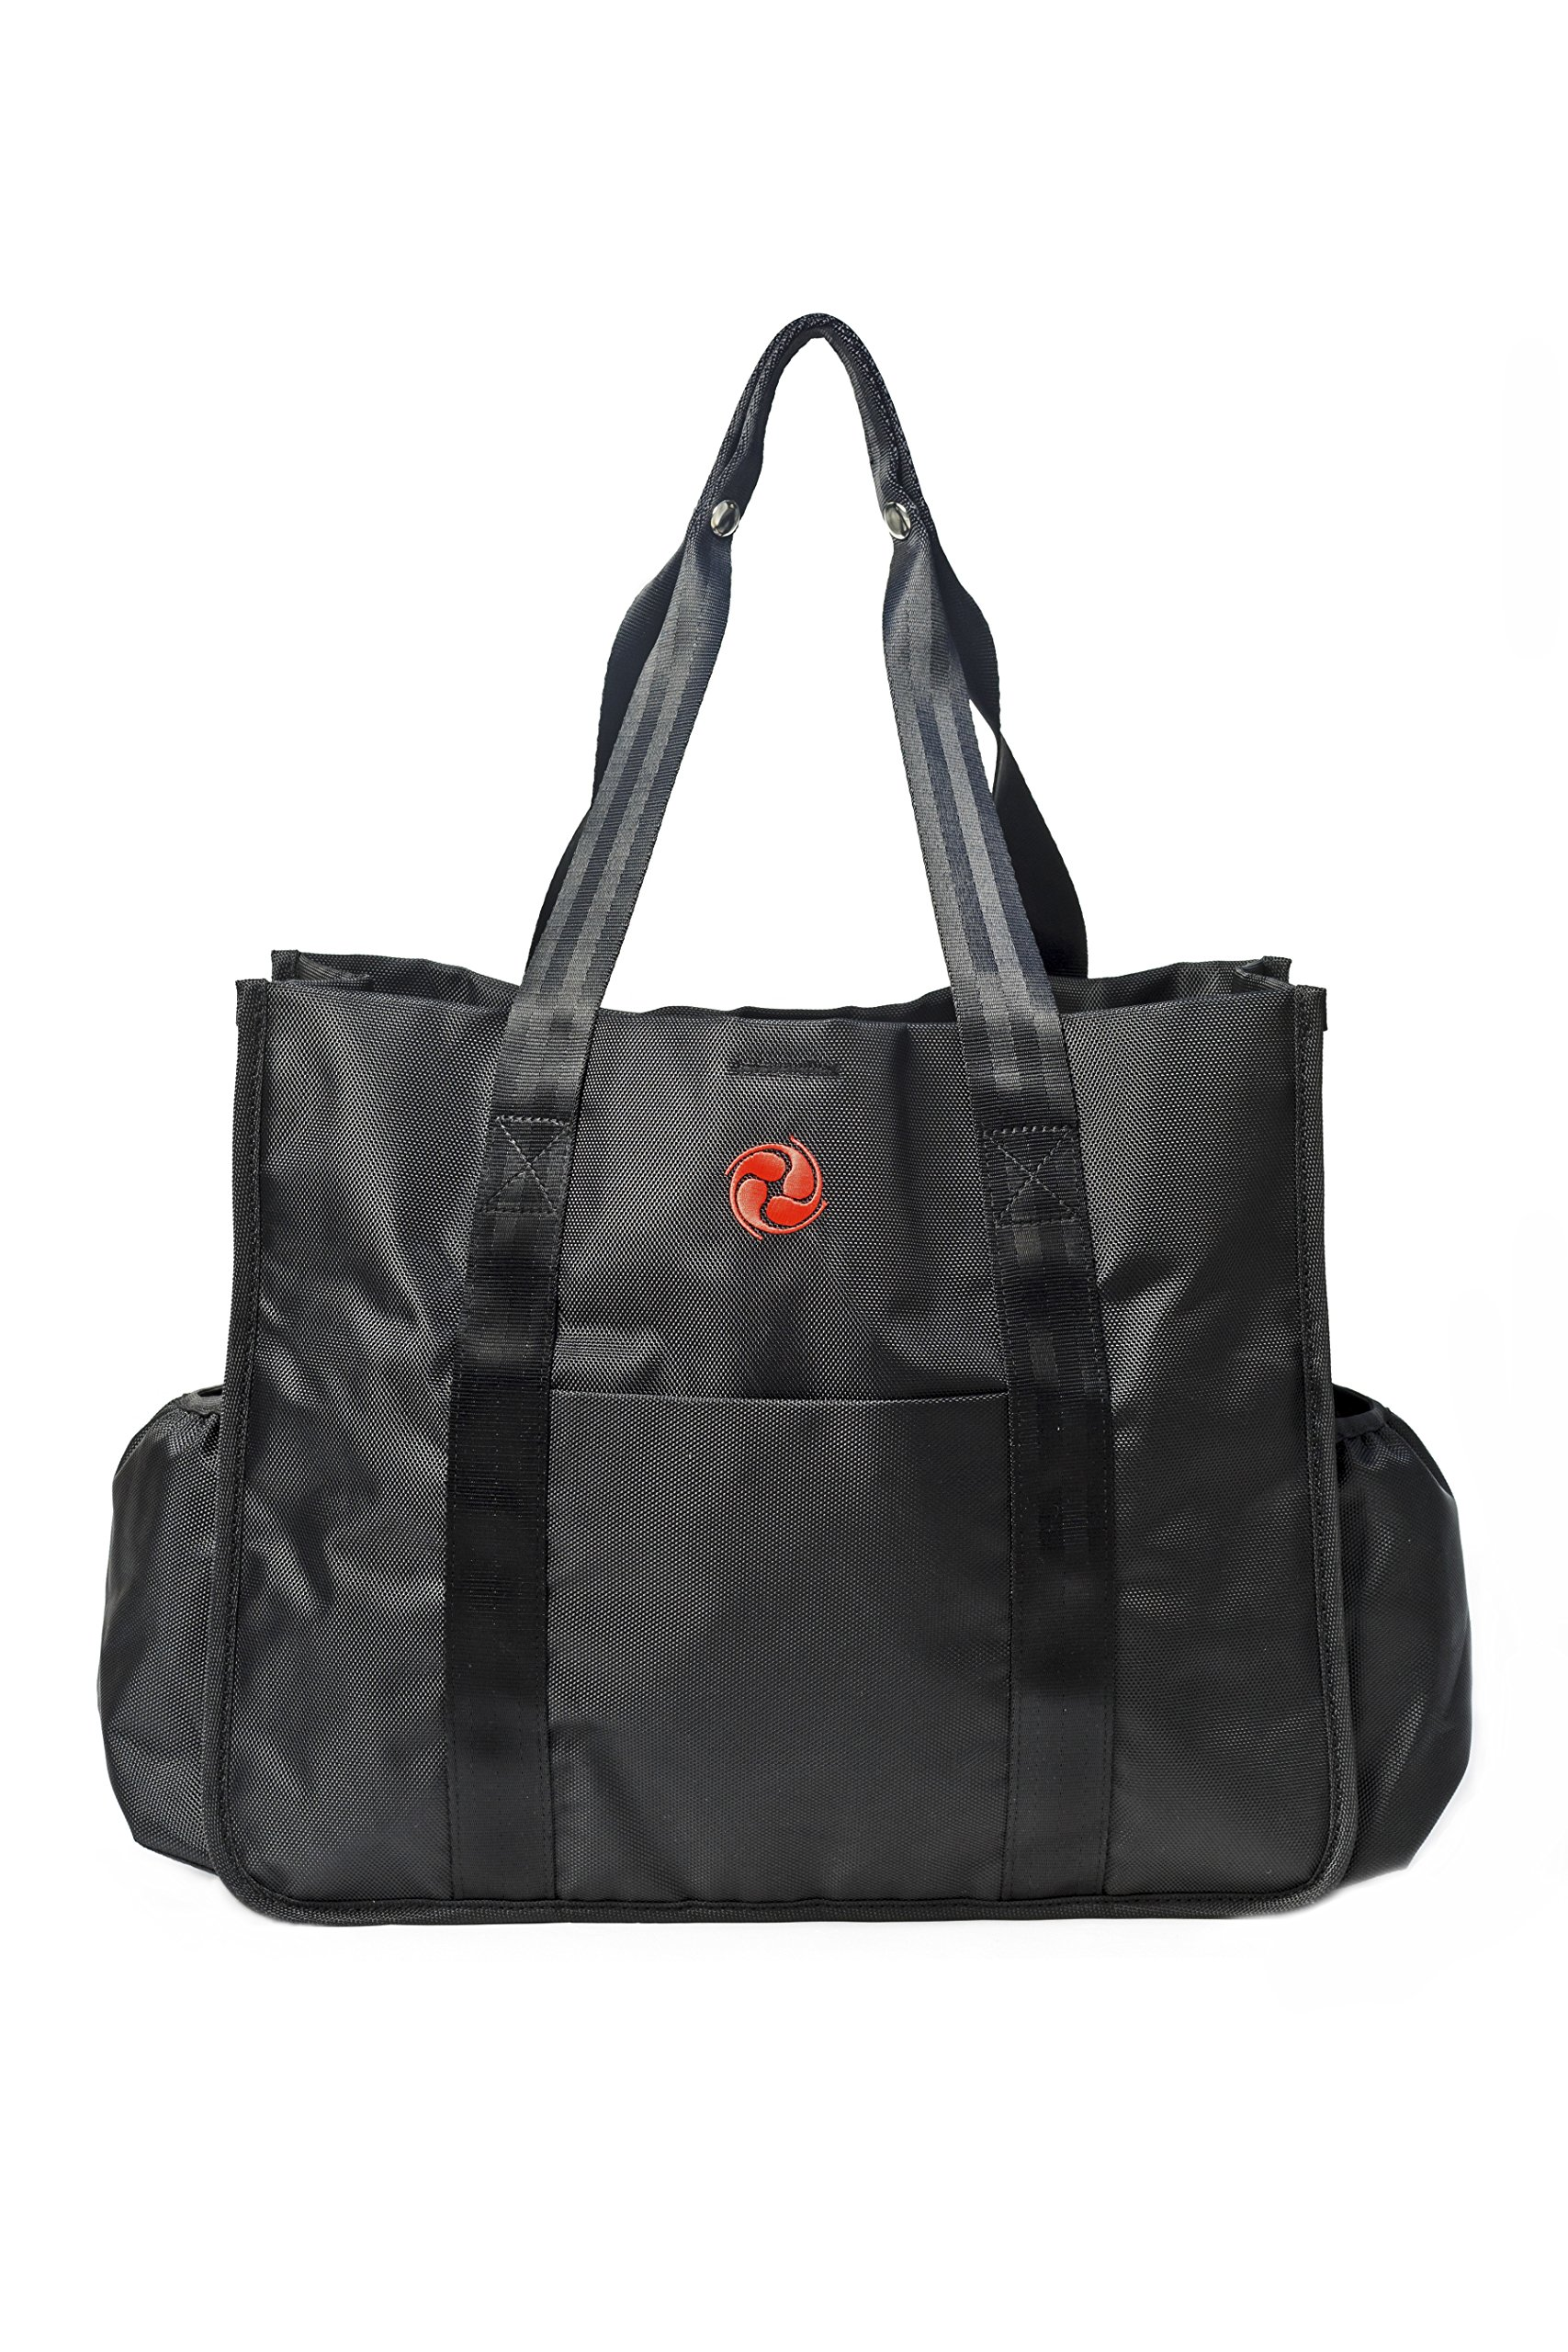 Best Premium Gym Tote Bag by Live Well 360 - Made from Ballistic Nylon - Multiple Compartments - High Quality and Durable Material for Perfect Fitness and Athletic Tote Bag, Diaper Bag, & Work Bag